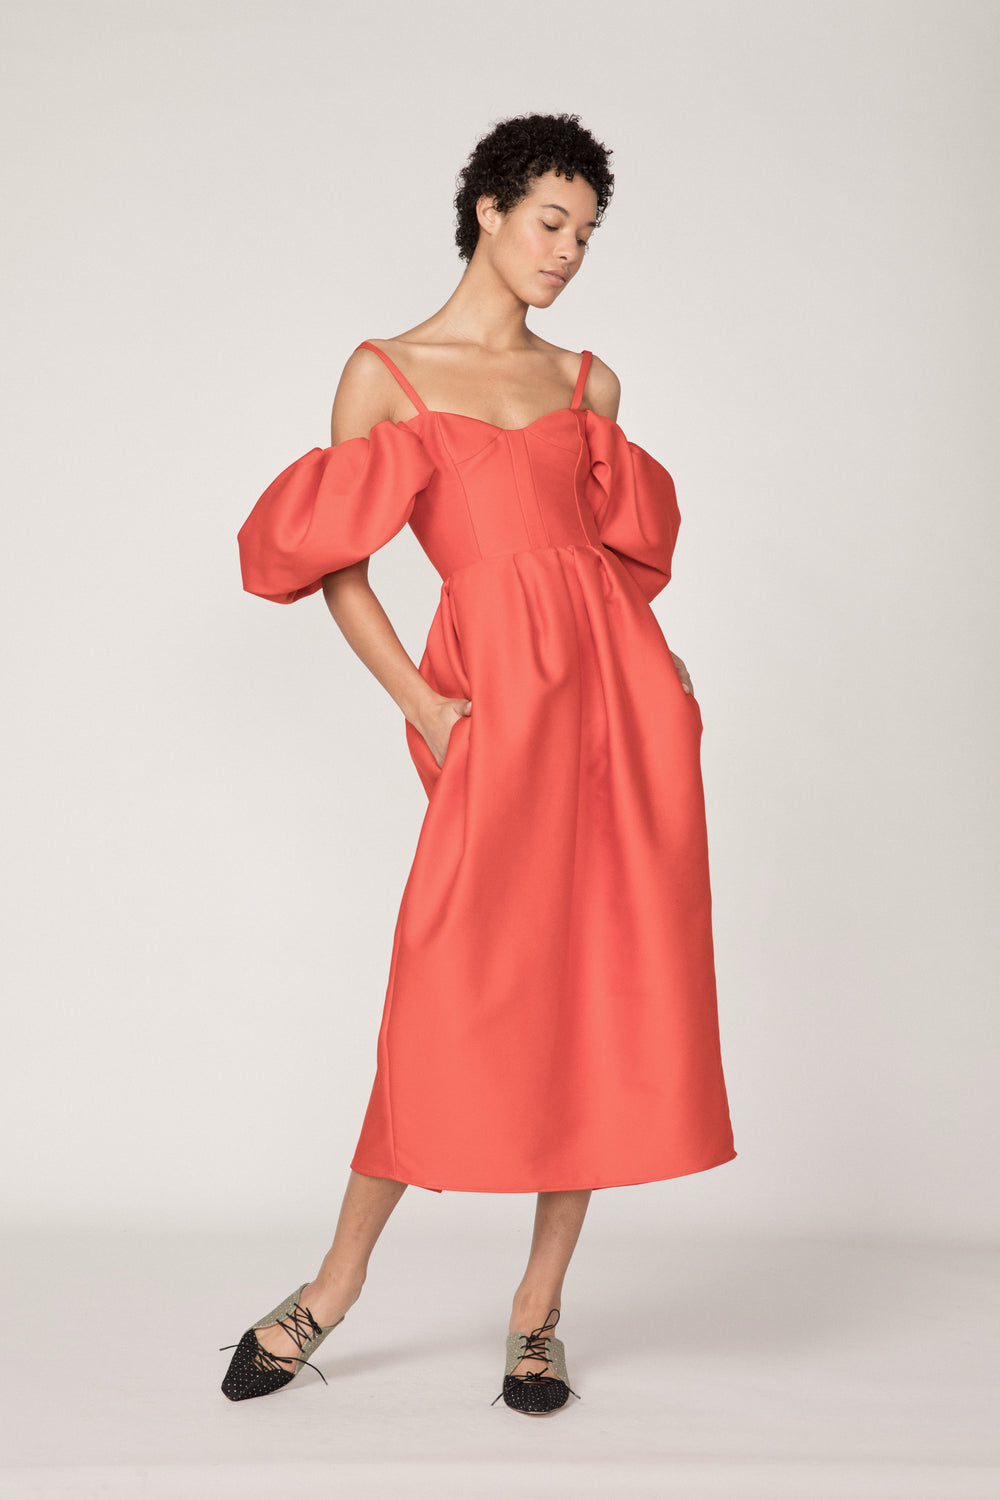 Rosie Assoulin Fall 2019 Off the Shoulder Puff Sleeve Cocktail Dress. Mid-length cocktail dress with puff sleeves. Ruched skirt. Split seam on rear hem. Center back zipper. Red. 100% Cotton. Sizes 0 - 12.